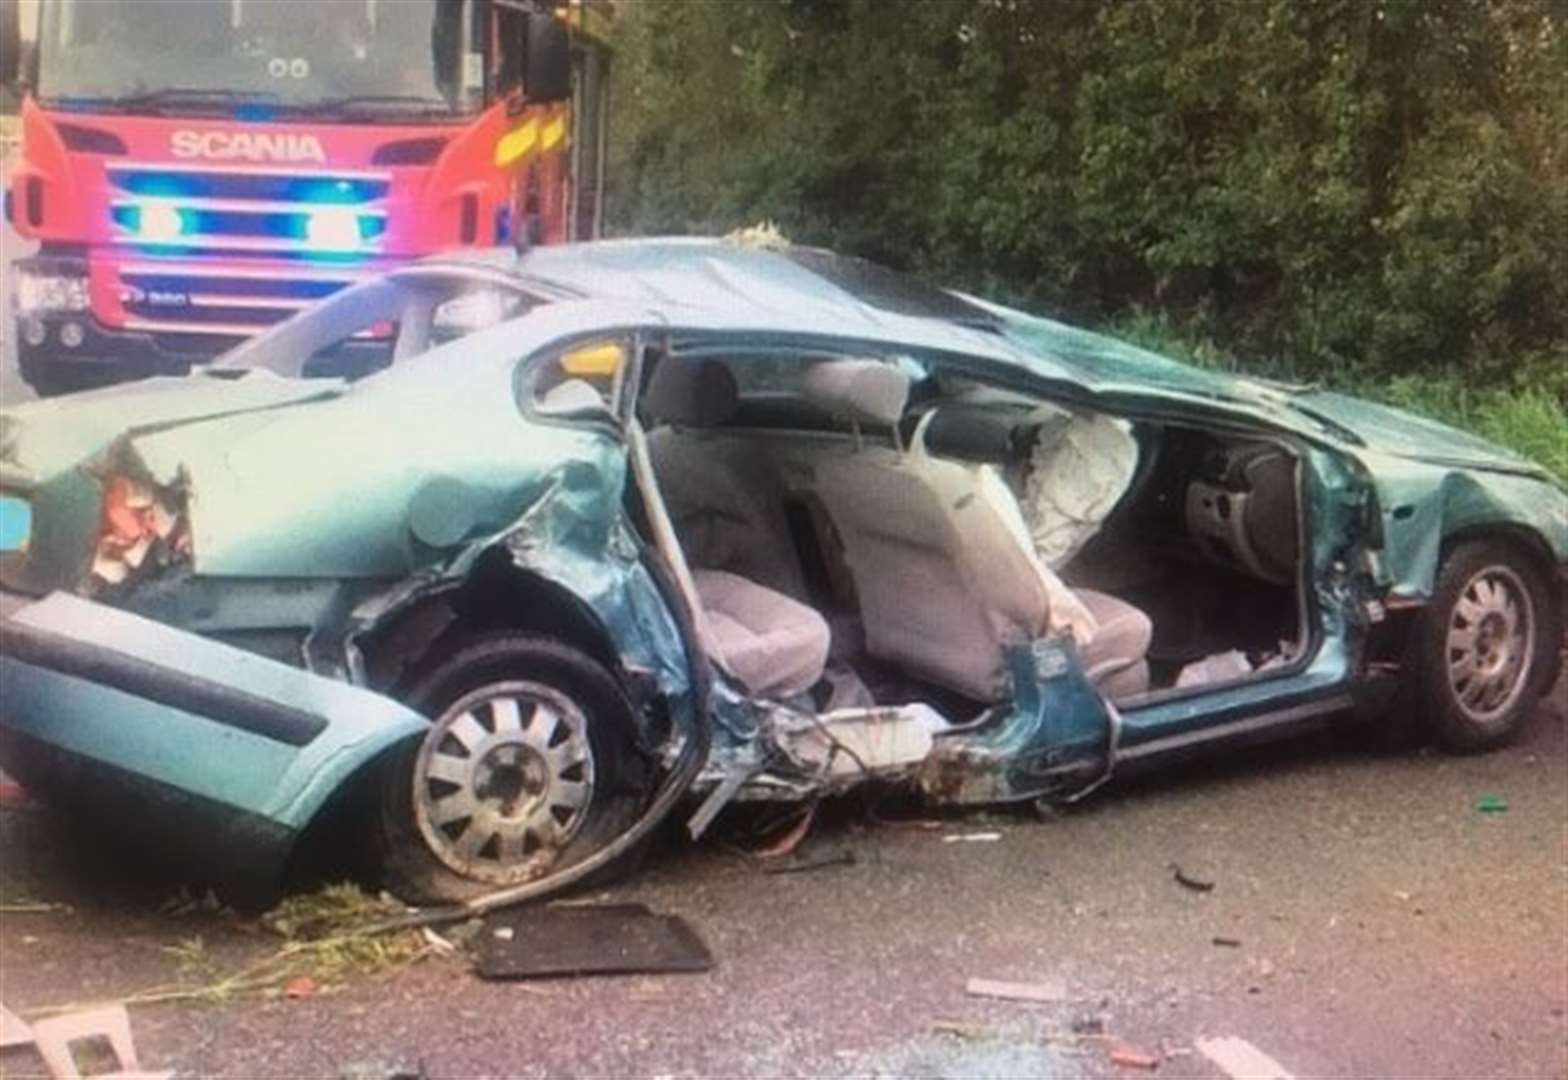 Man airlifted to hospital following crash involving two cars near Eye